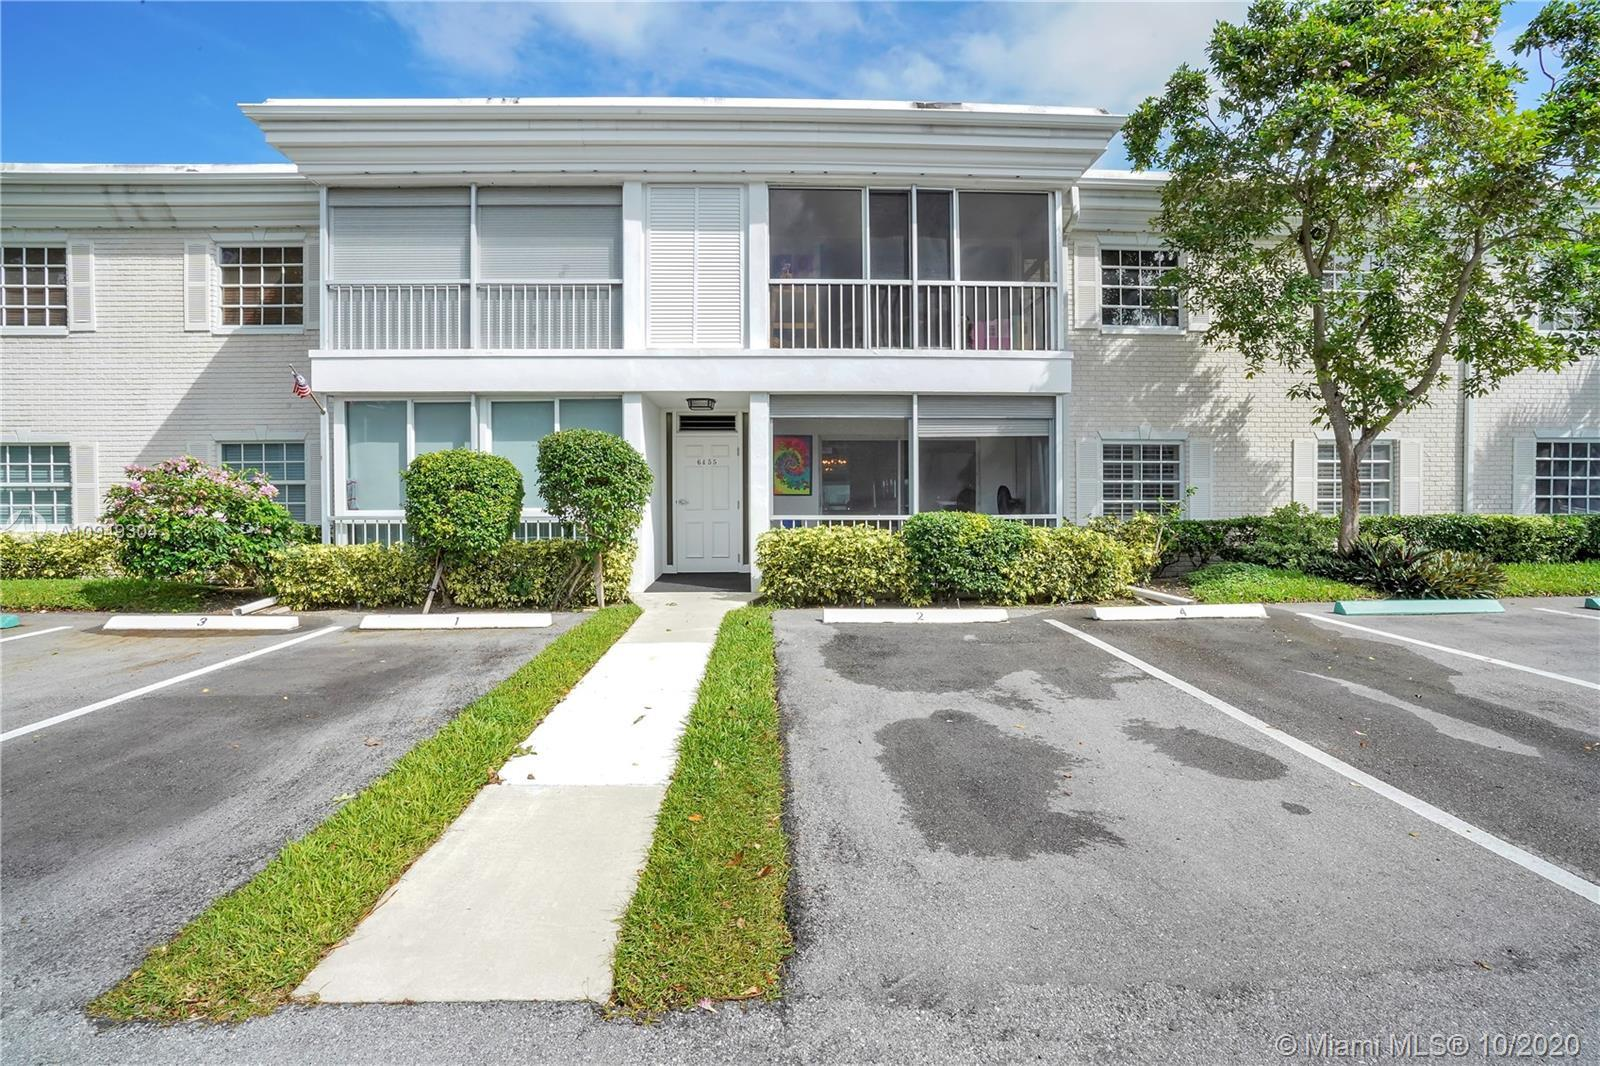 Come live in the exclusive, gated community of Bay Colony Club located near the Intracoastal in NE Fort Lauderdale. This spacious 2 BD/BA ground floor unit is clean and airy with plenty of natural light filtering in from the patio door and windows. You will enjoy spacious bedrooms, have the convenience of having your own washer and dryer in the unit, and a screened in patio area to relax on. Great community offering many amenities such as a clubhouse, 4 pools, tennis, outdoor barbeque with a beautiful pavilion area overlooking the Intracoastal, a Marina, shuffleboard and more... You will also enjoy close proximity to great restaurants, the ocean, and shopping.